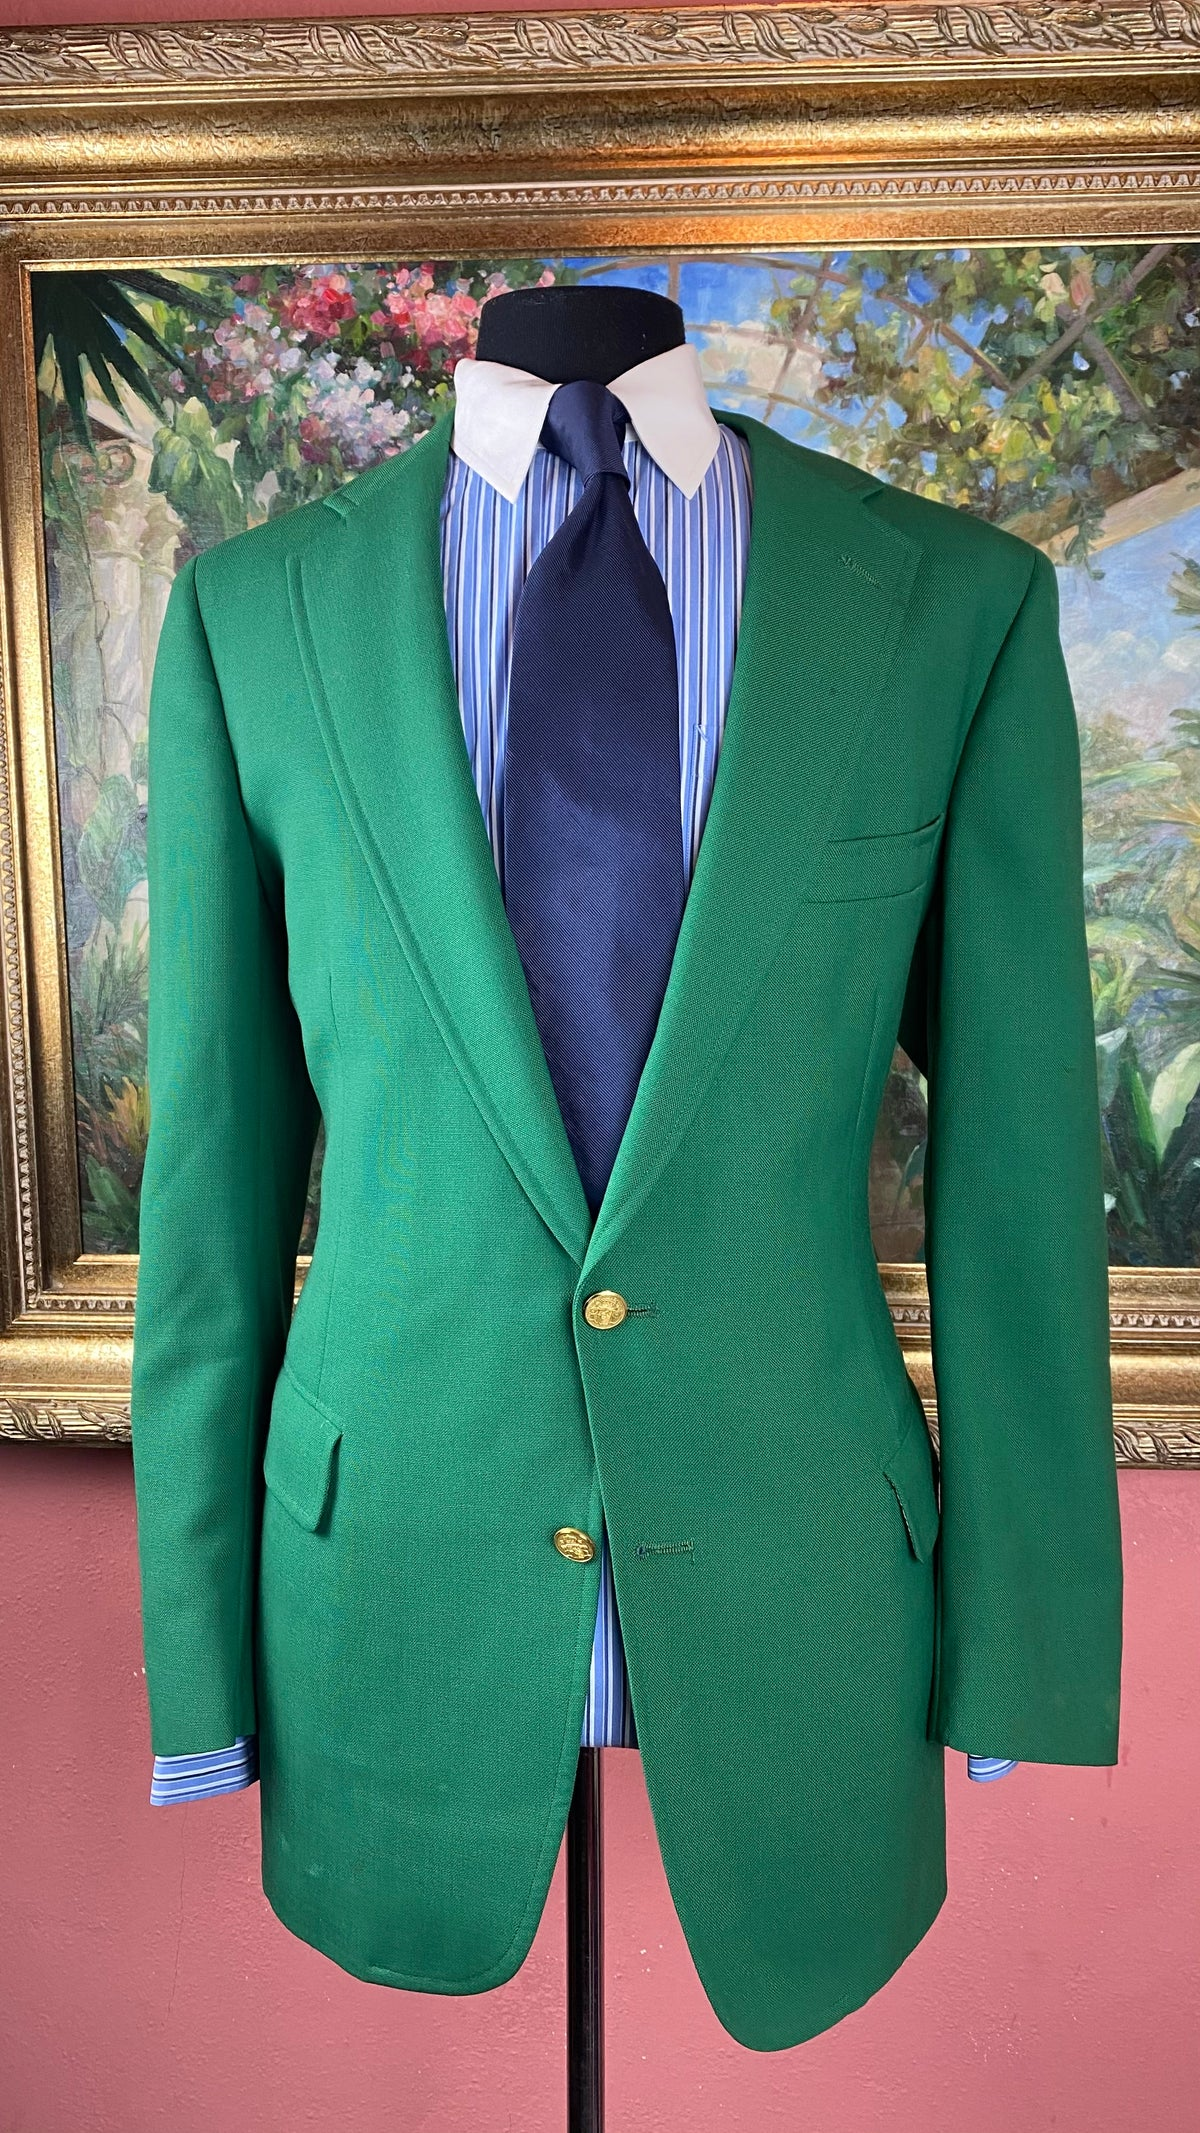 Image of VTG Green Blazer